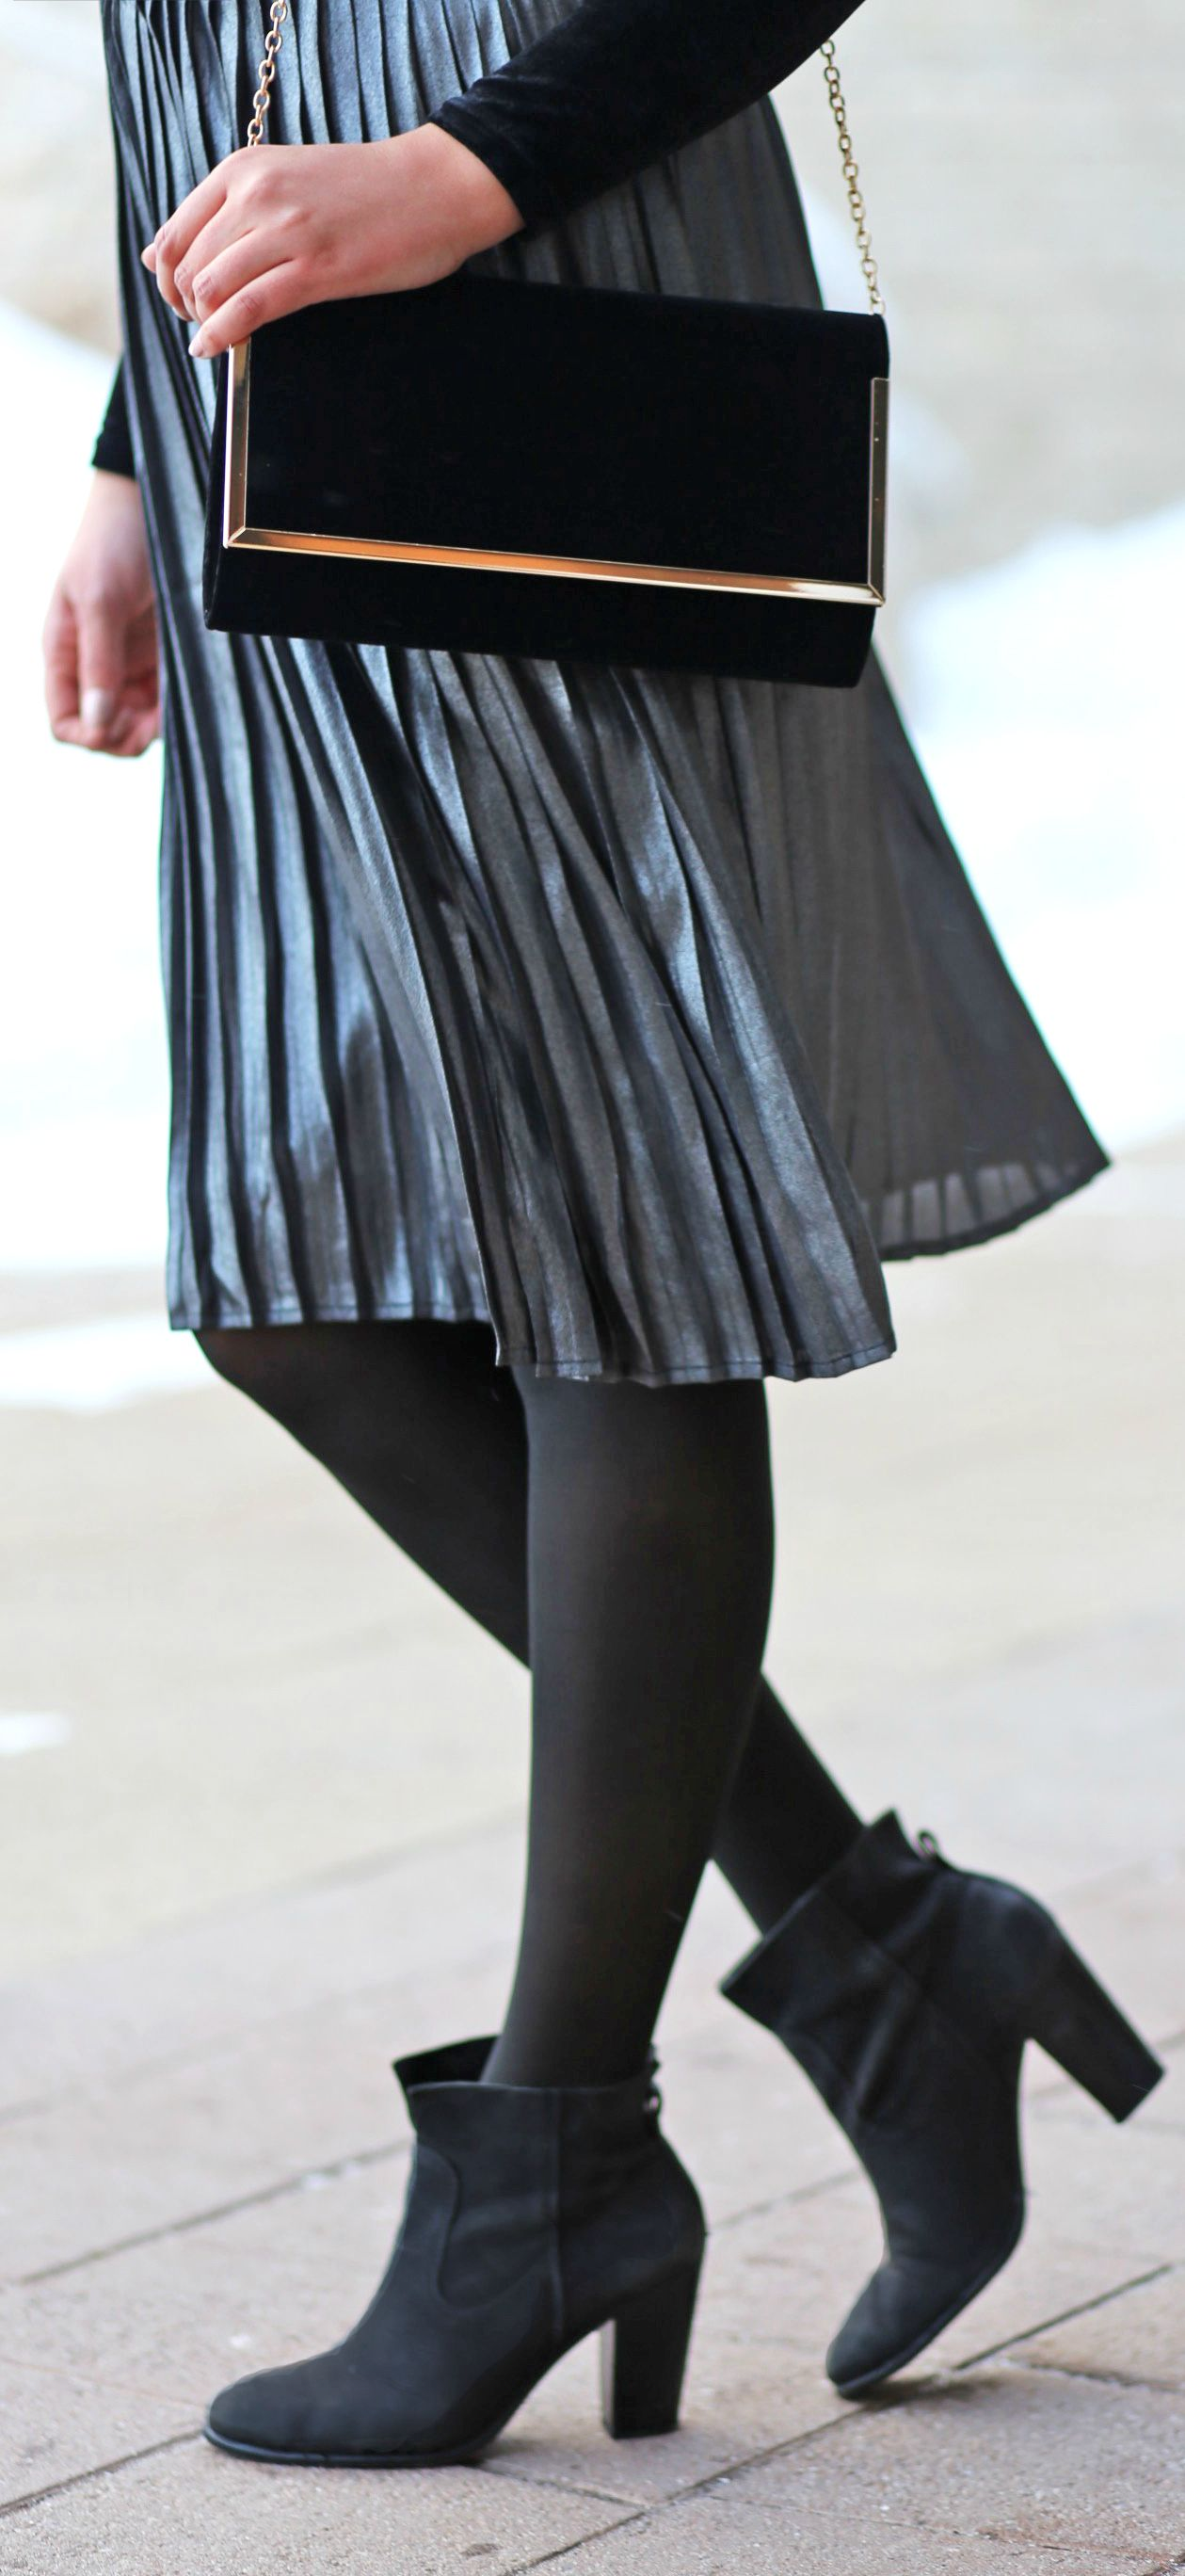 8e373a407 The most stunning pleated skirt! For under $25 - it's a steal!   Fashion  blogger Mash Elle styles a @DynamiteStyle pleated skirt with a velvet  bodysuit and ...